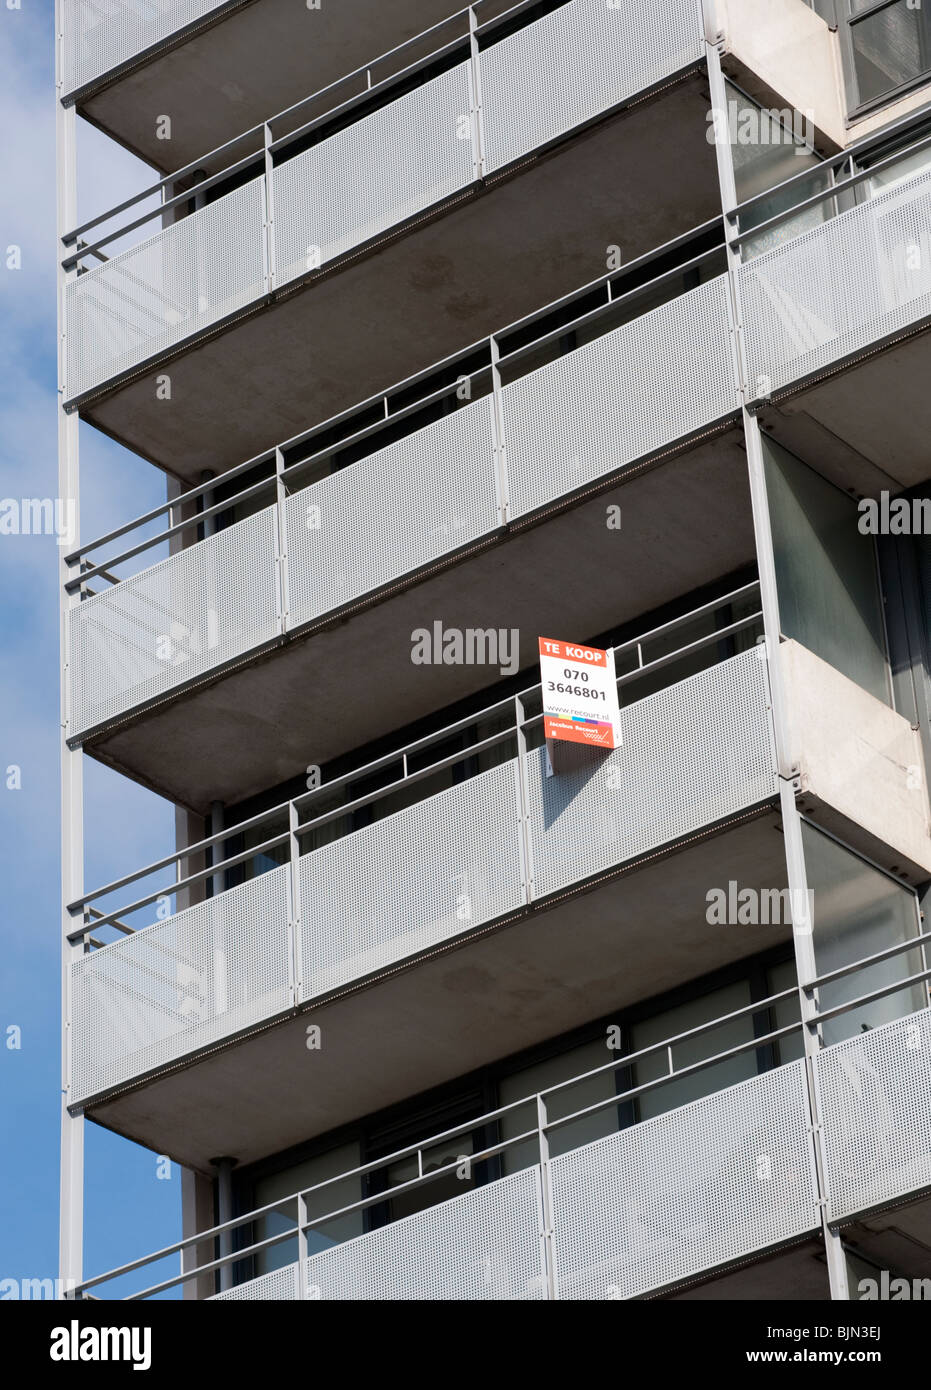 Modern Apartment Building With For Sale Sign On Balcony In The